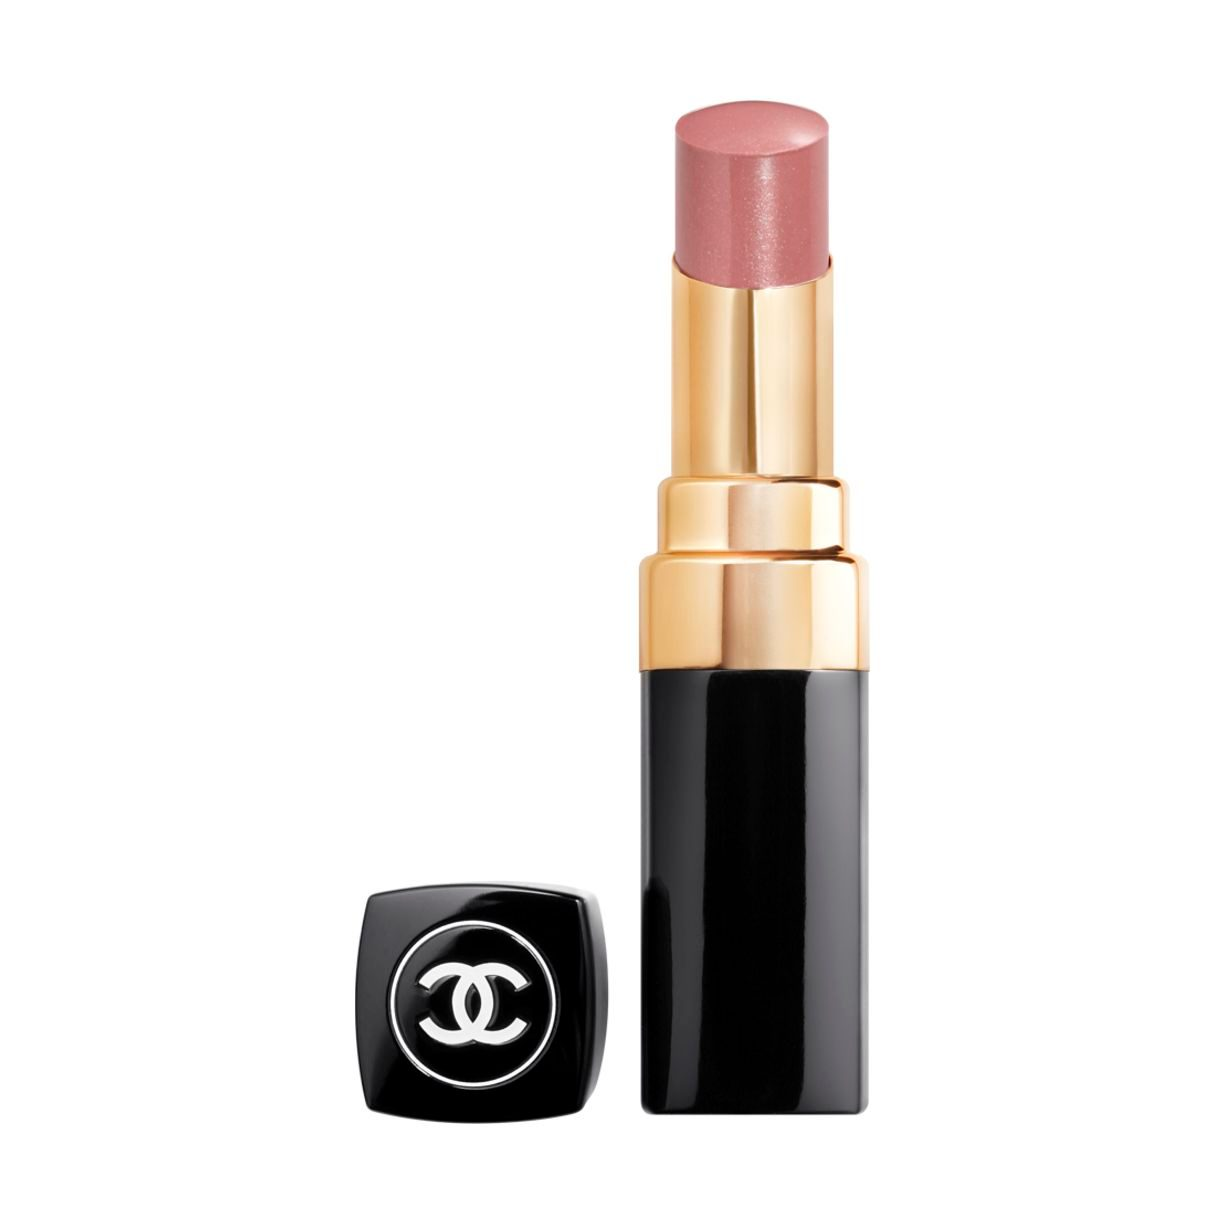 ROUGE COCO SHINE HYDRATING SHEER LIPSHINE / HYDRATING COLOUR LIPSHINE 54 BOY 3G